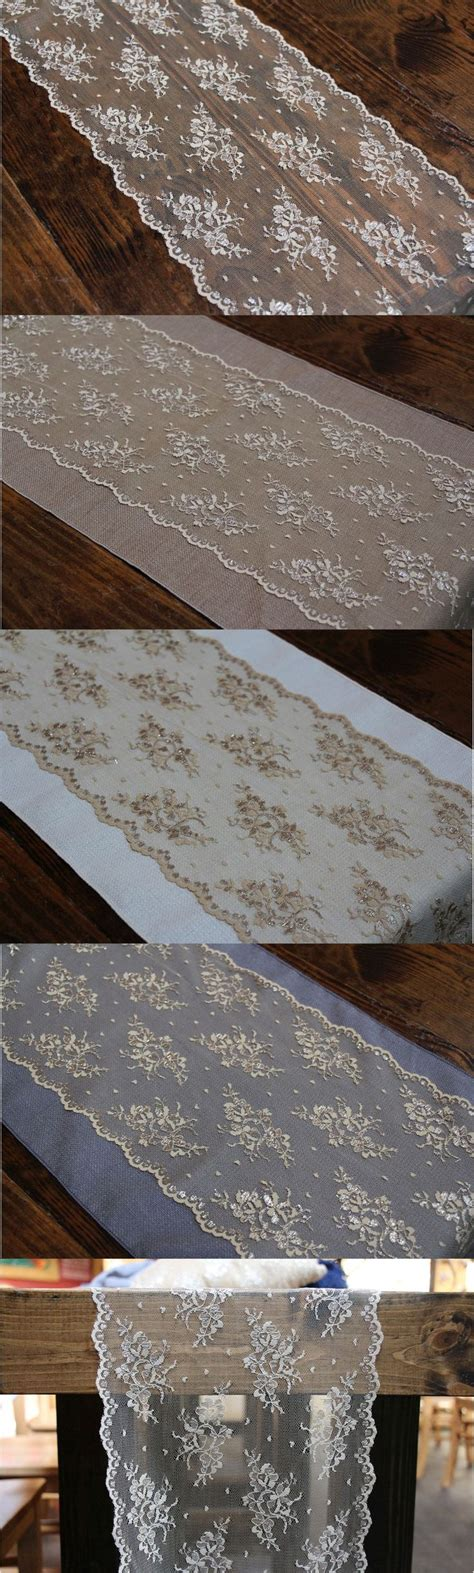 gold lace table runner best 25 lace runner ideas on diy lace table